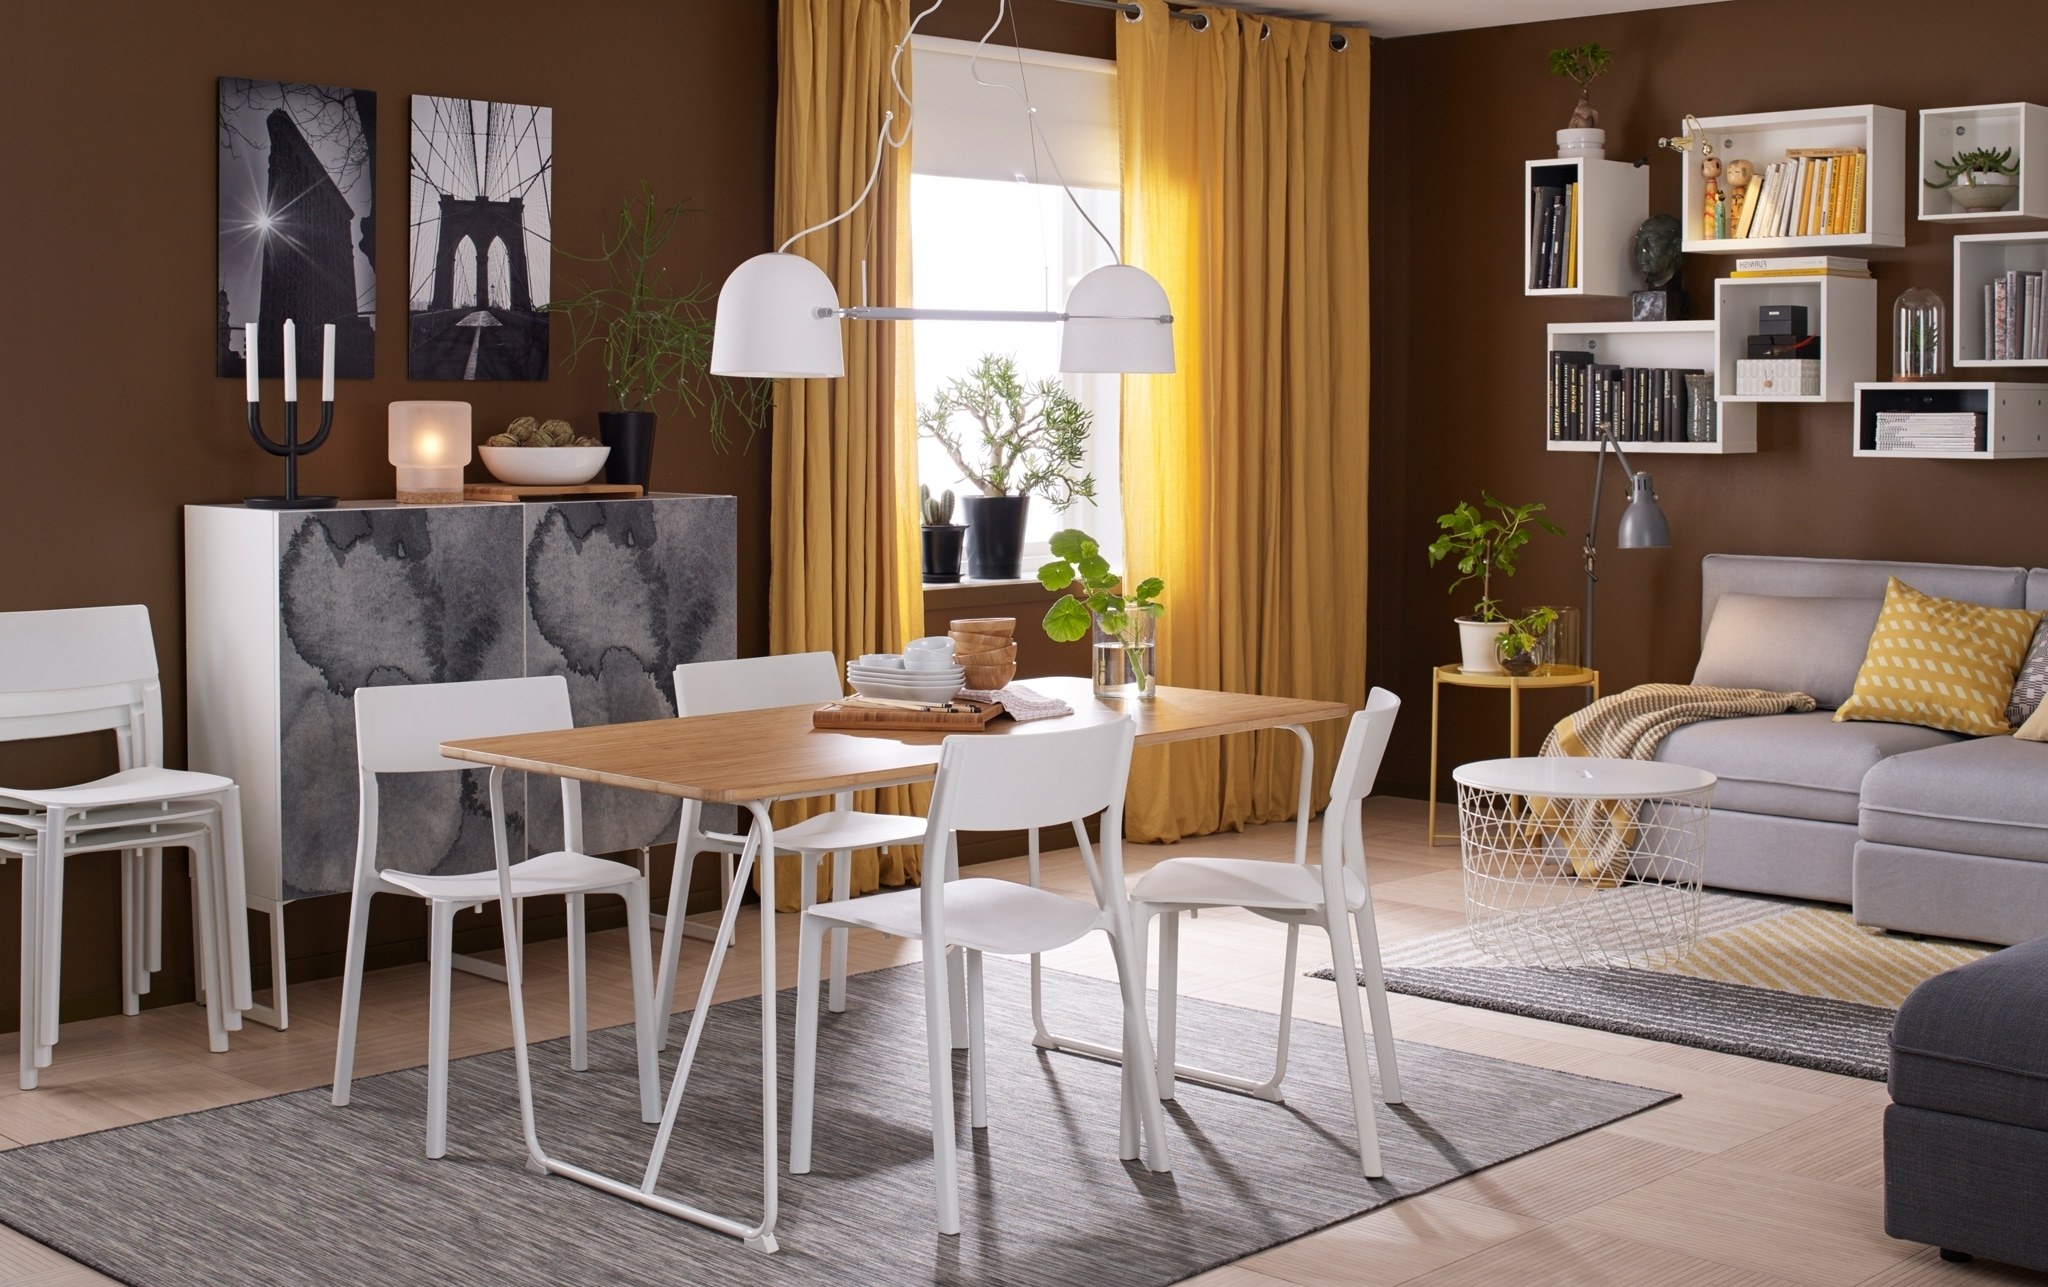 Dining Room Furniture & Ideas